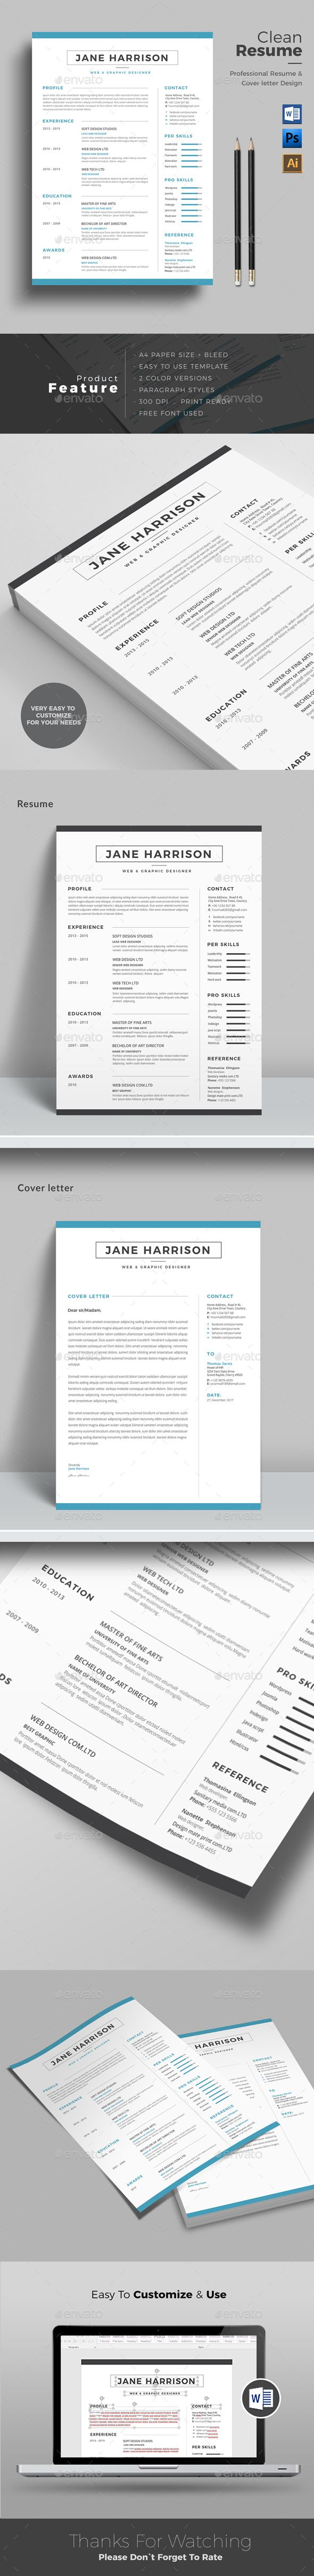 Resume Design In Ms Word  Simplest Ms Word Resume With Free